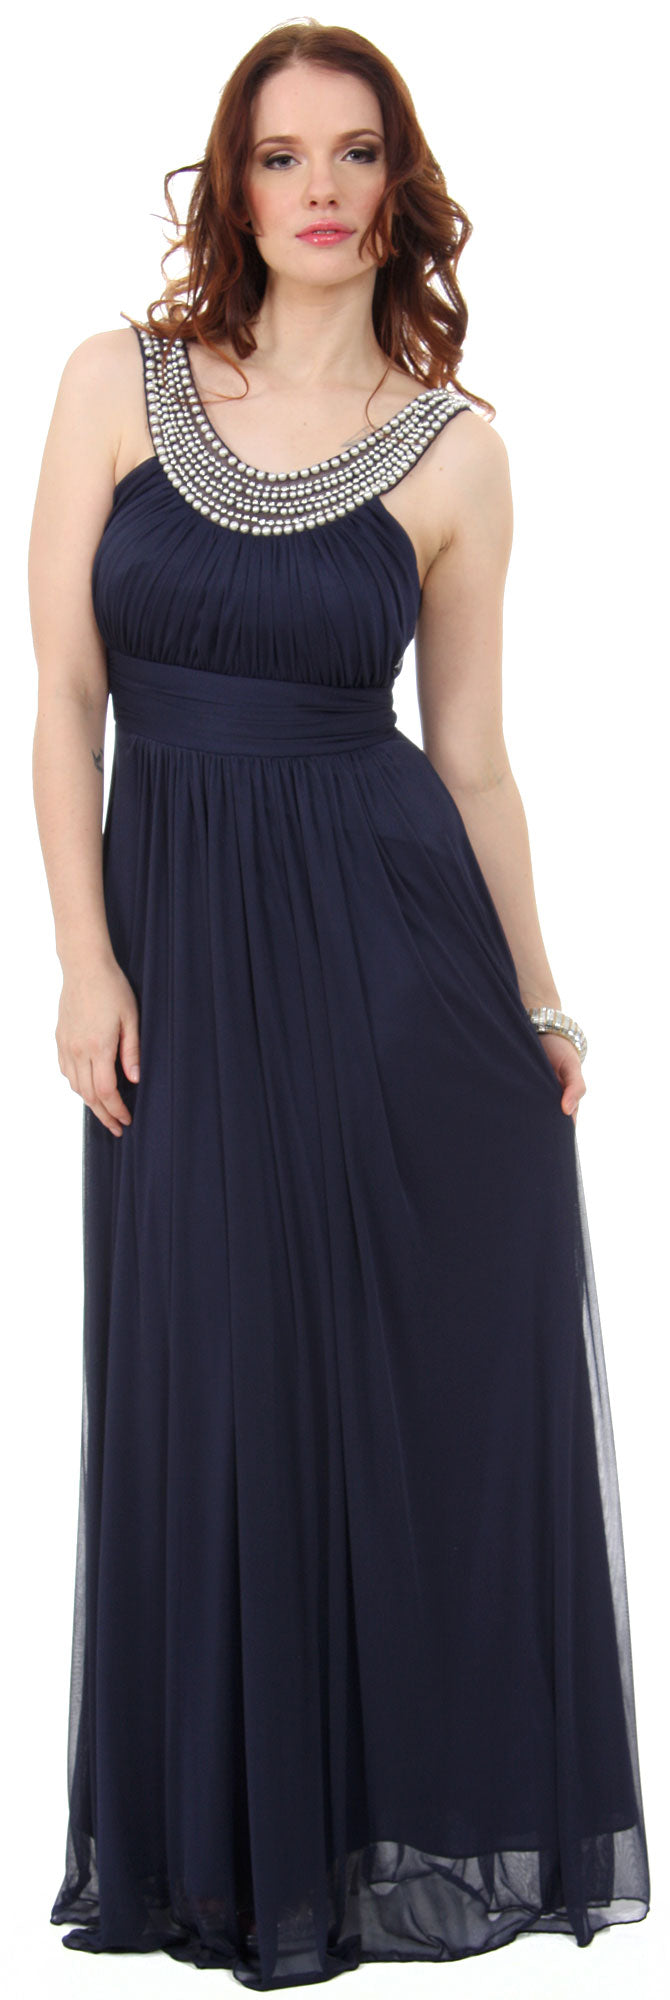 Image of Pearls U-neck Ruched Long Formal Bridesmaid Dress  in Navy